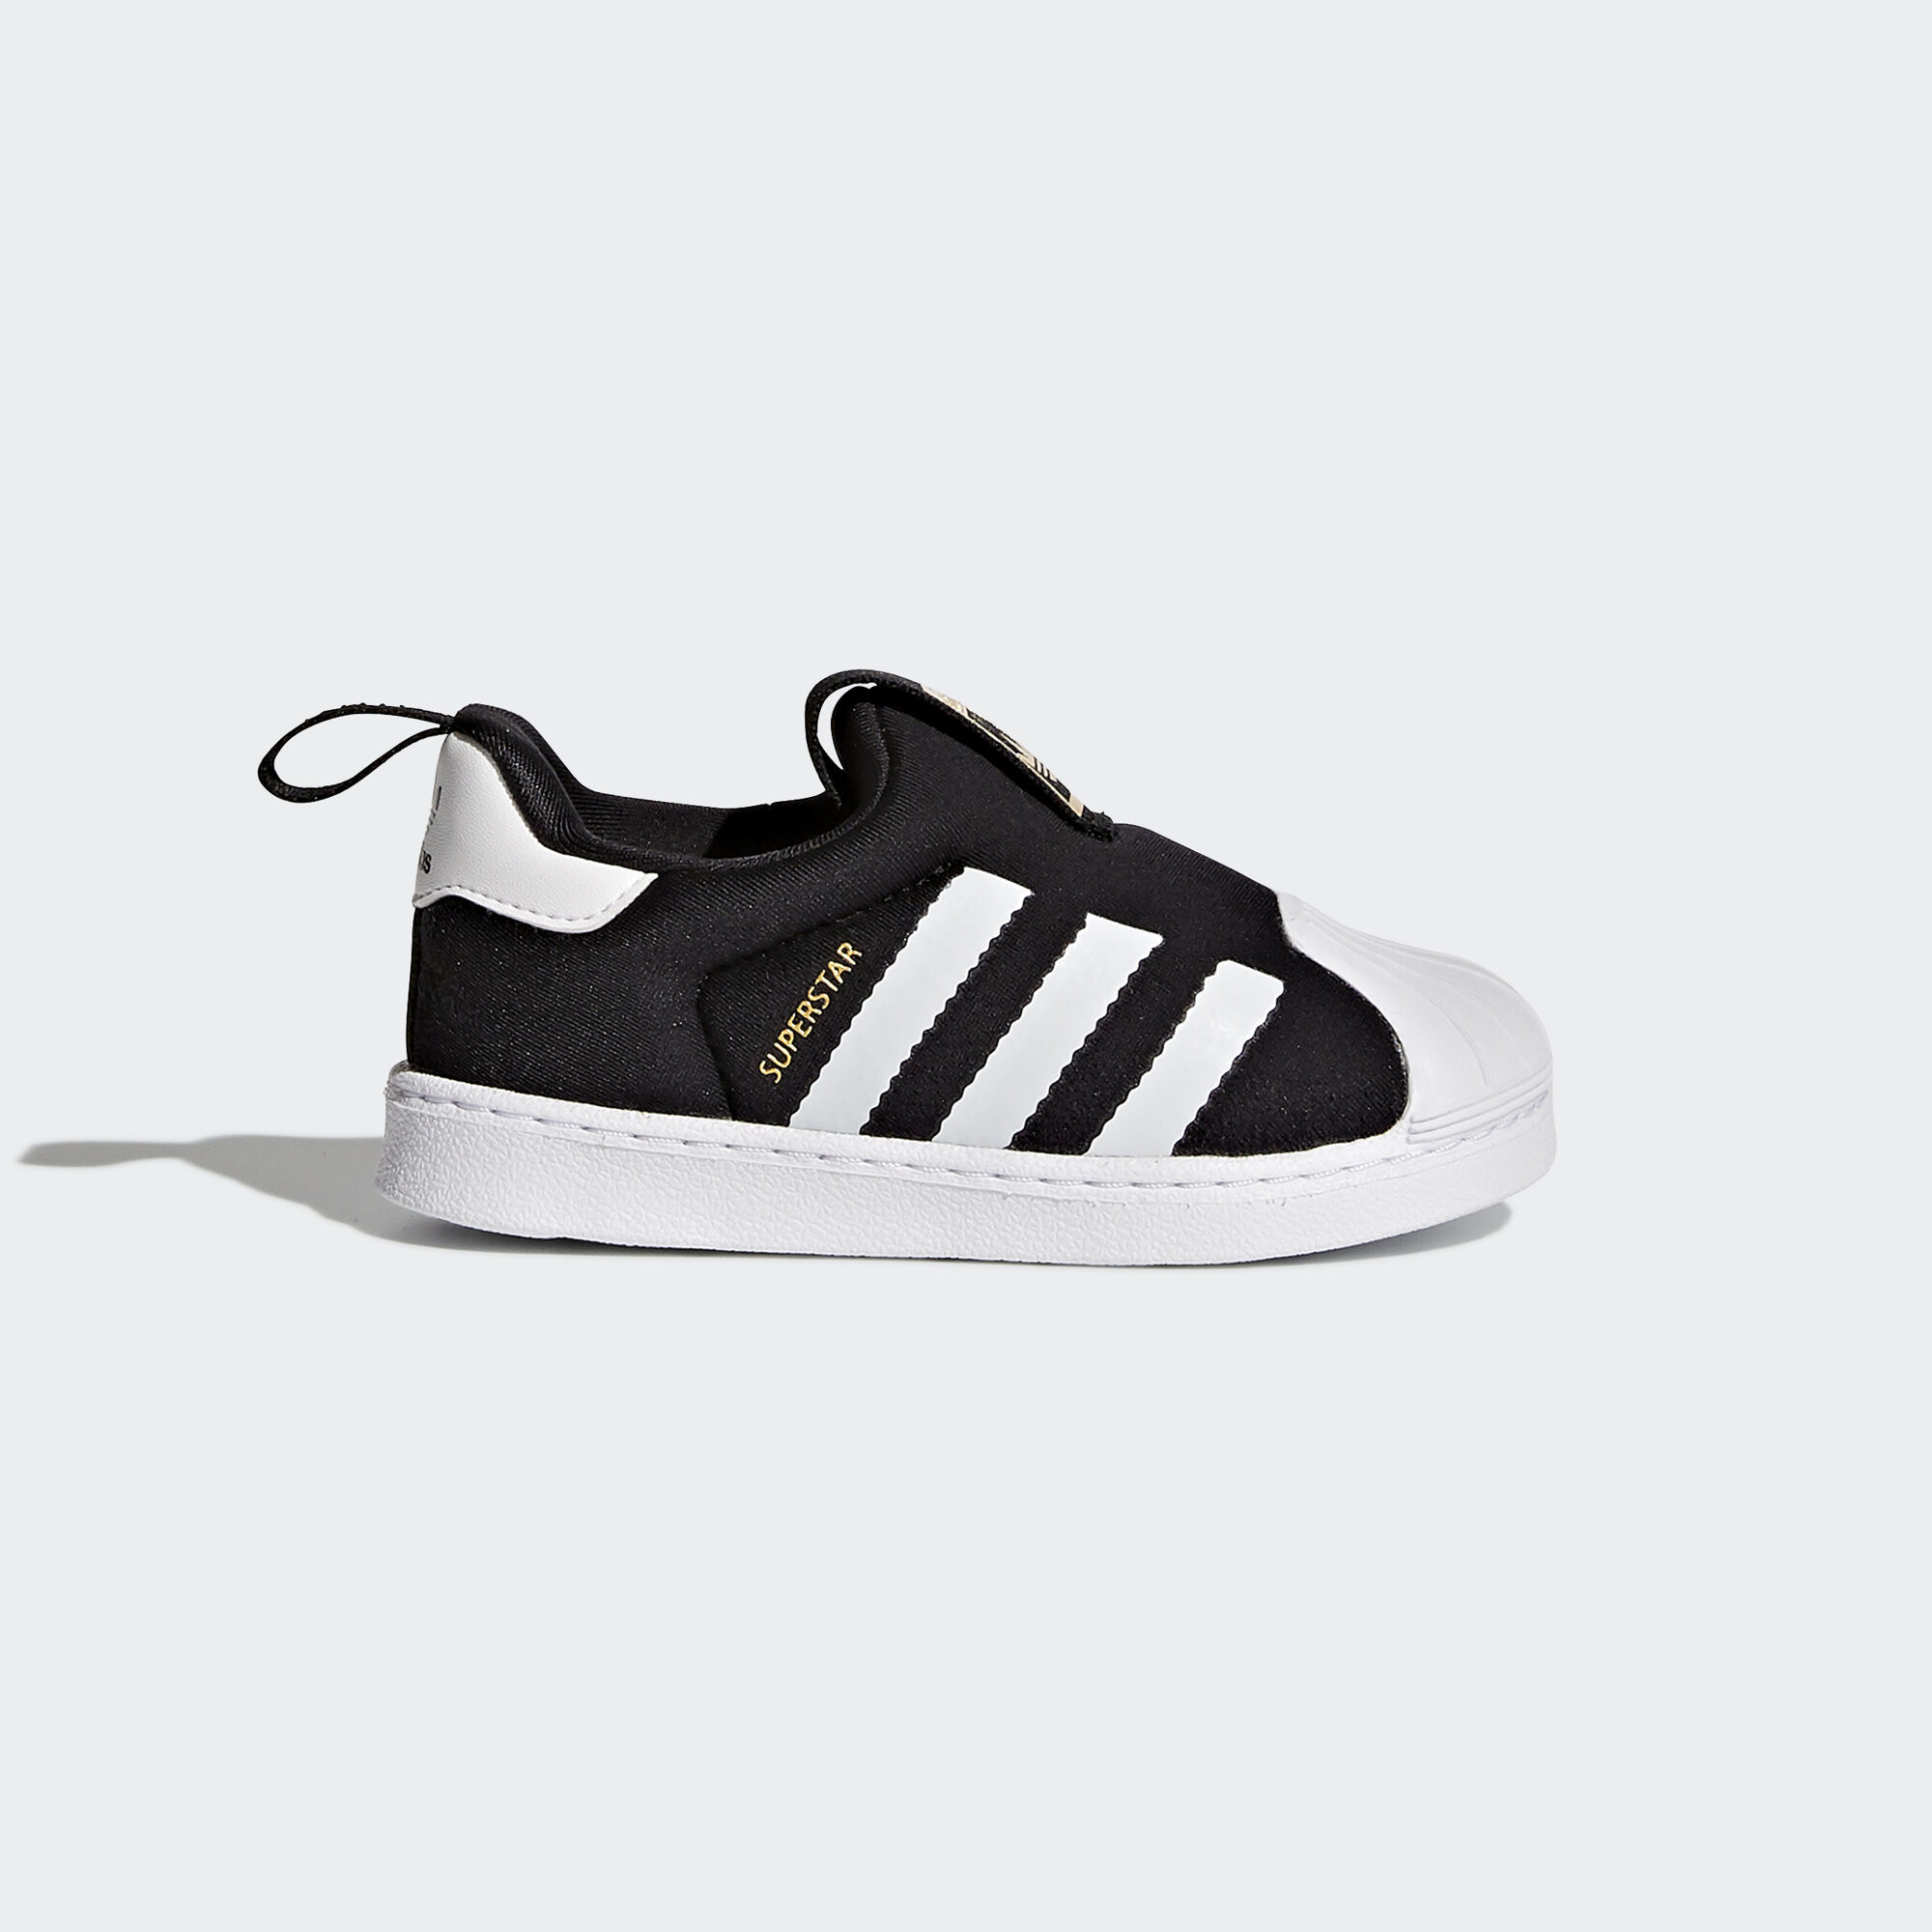 Adidas Superstar 360 Toddler